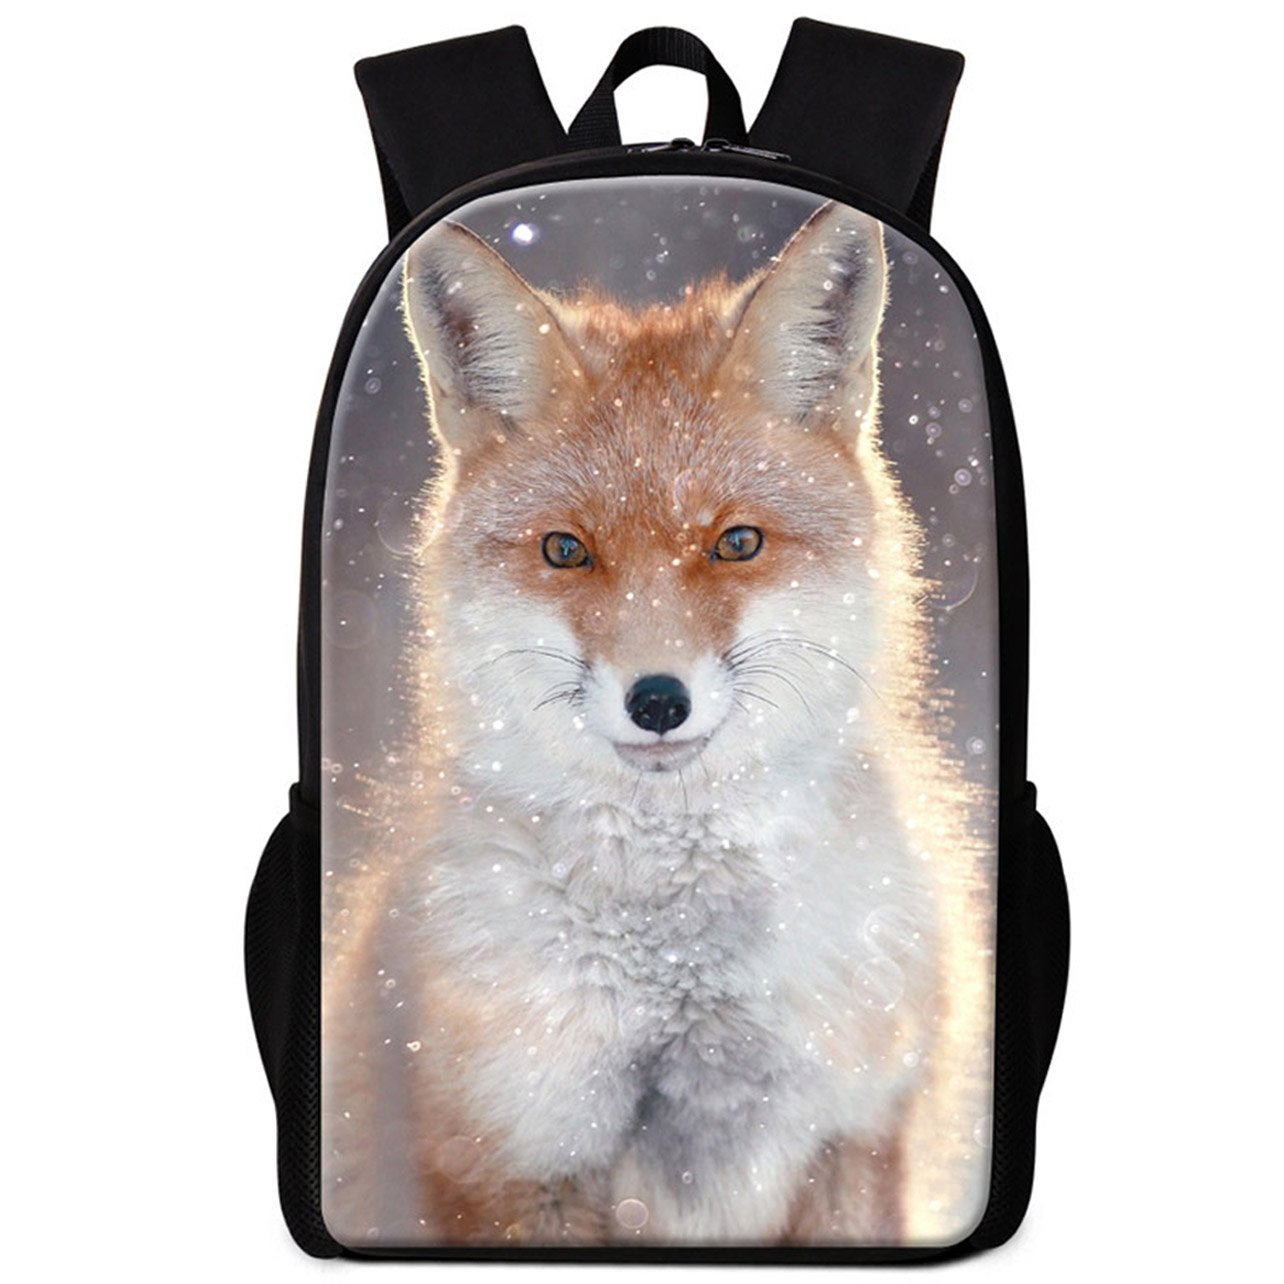 a9da97494533 Amazon.com  Dispalang Cute Fox Backpack for Children Cool School Bag  Pattern for Girls Boys Day Pack  Sports   Outdoors